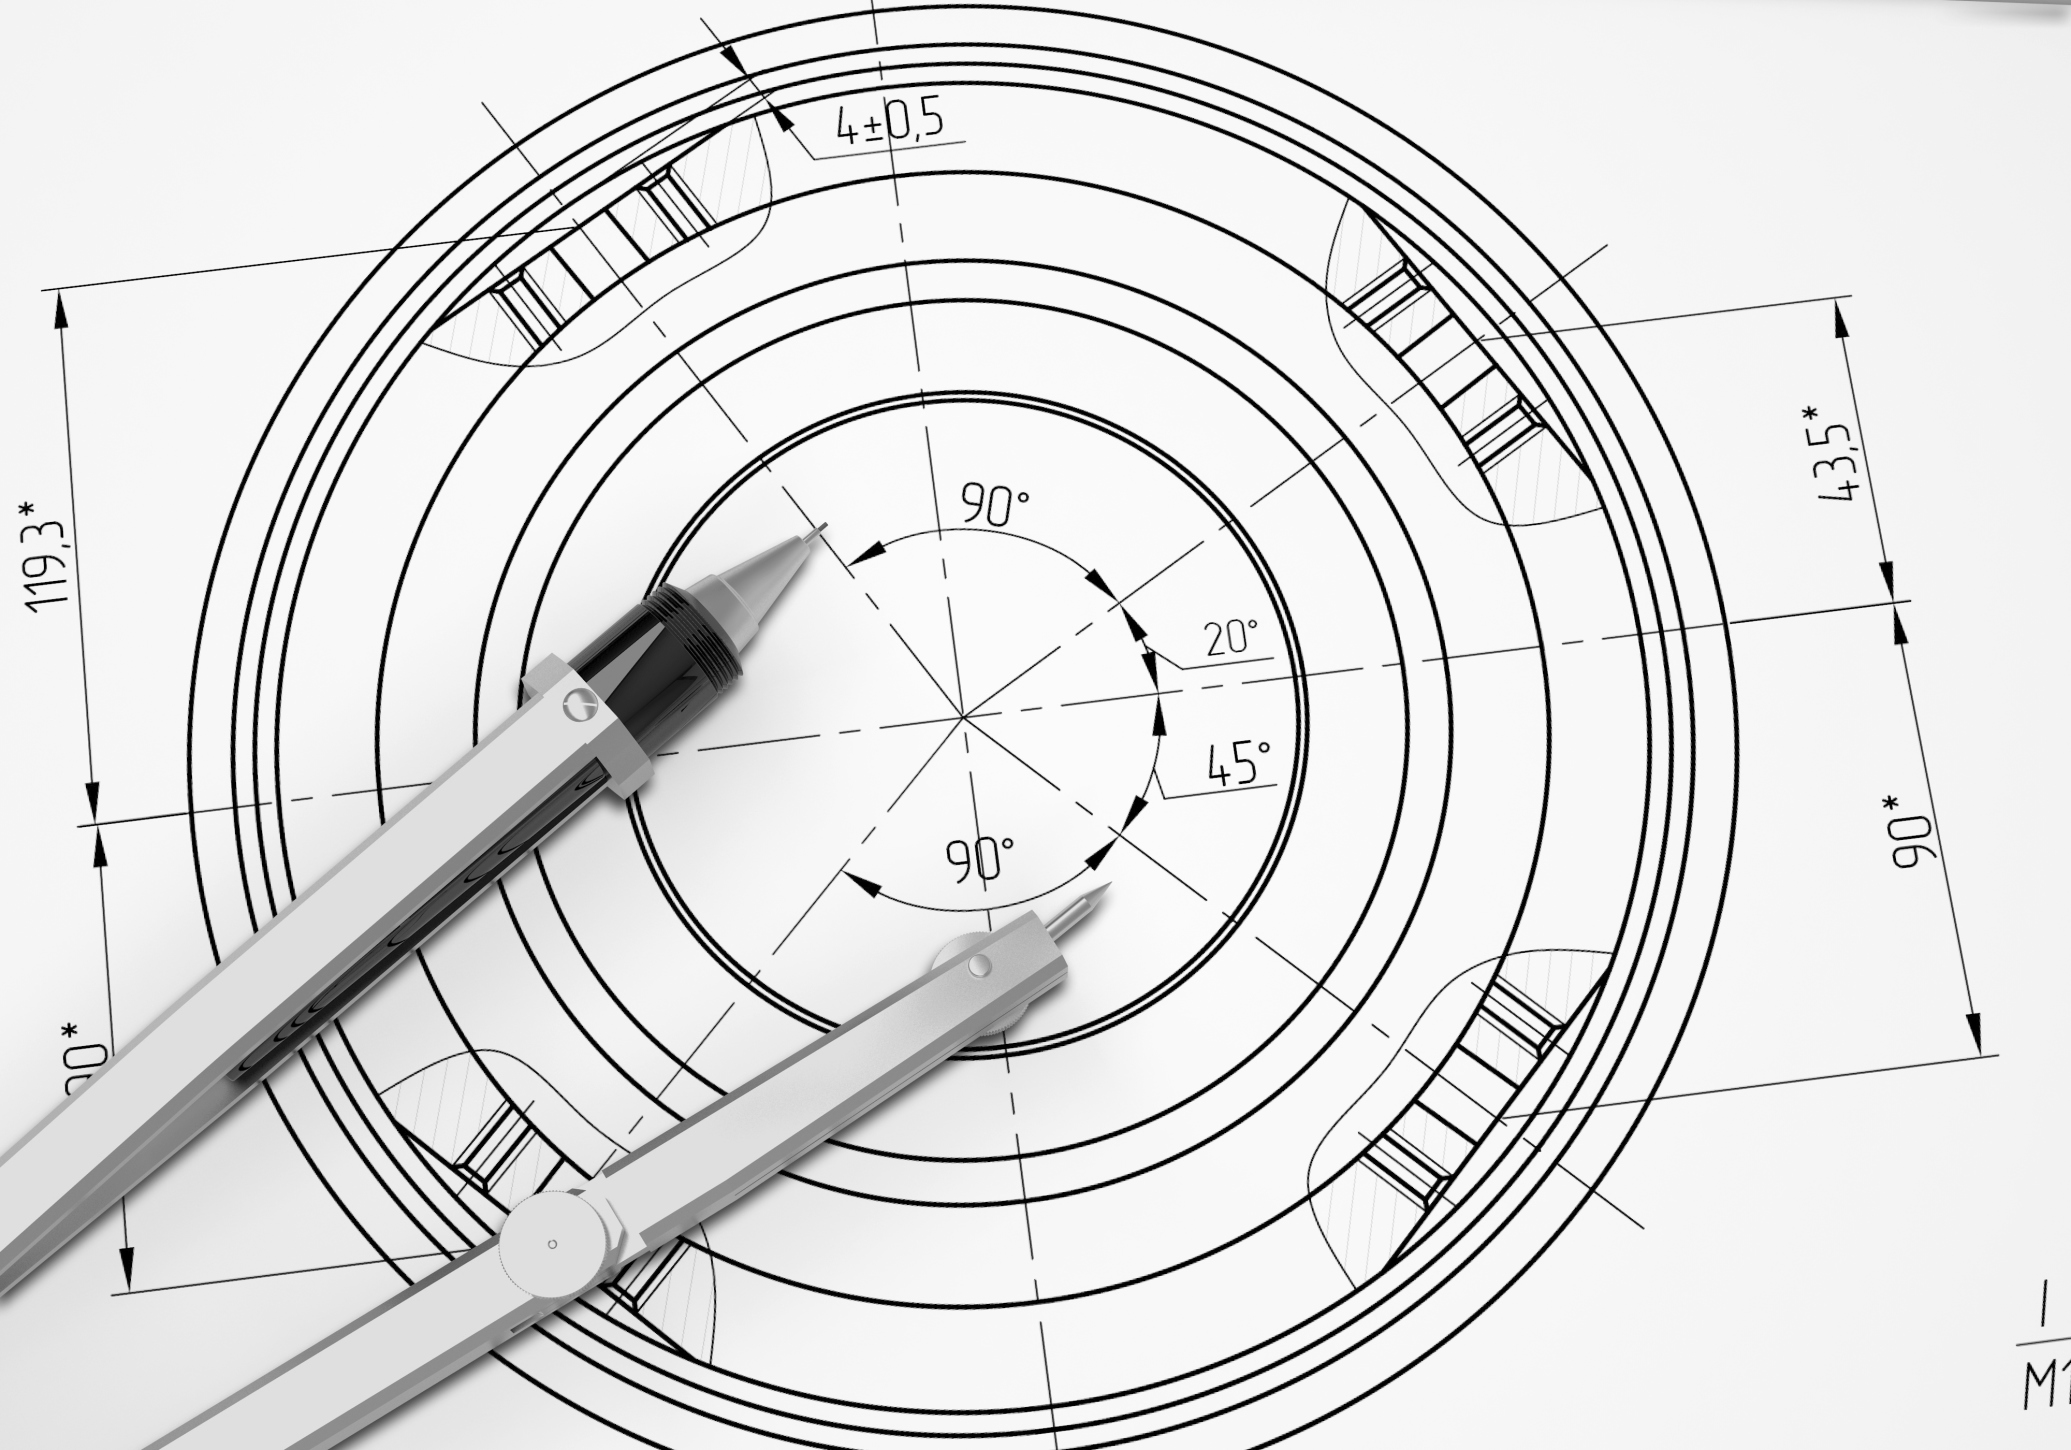 How to Calculate Diameter From Circumference